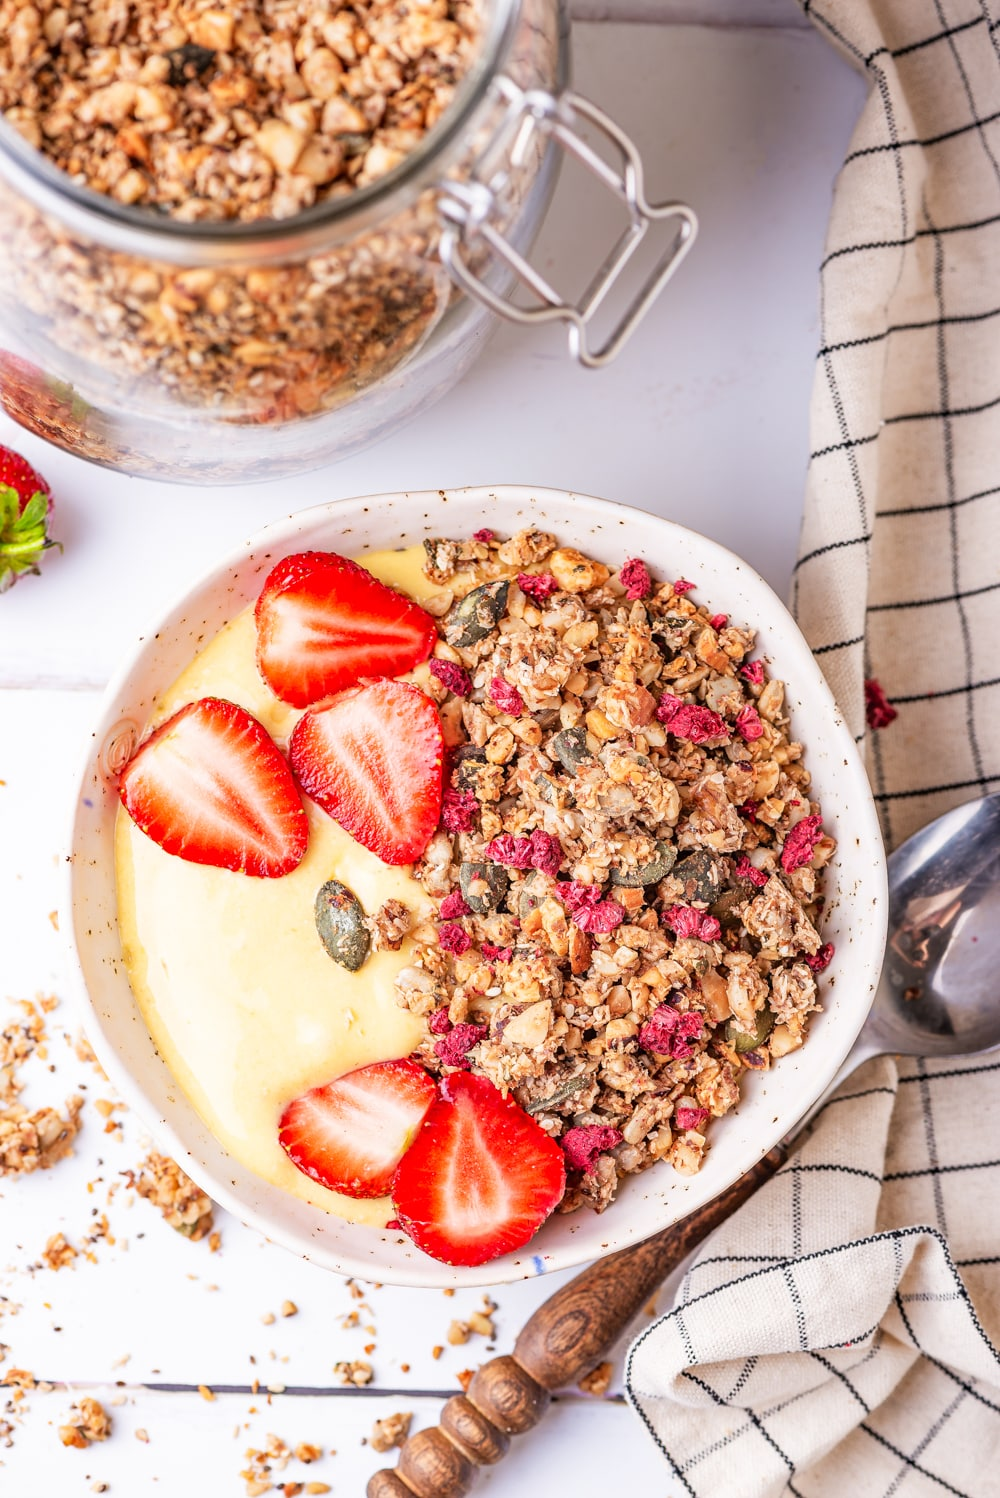 Granola, yogurt, and strawberries in a white bowl with a jar of granola next to it.